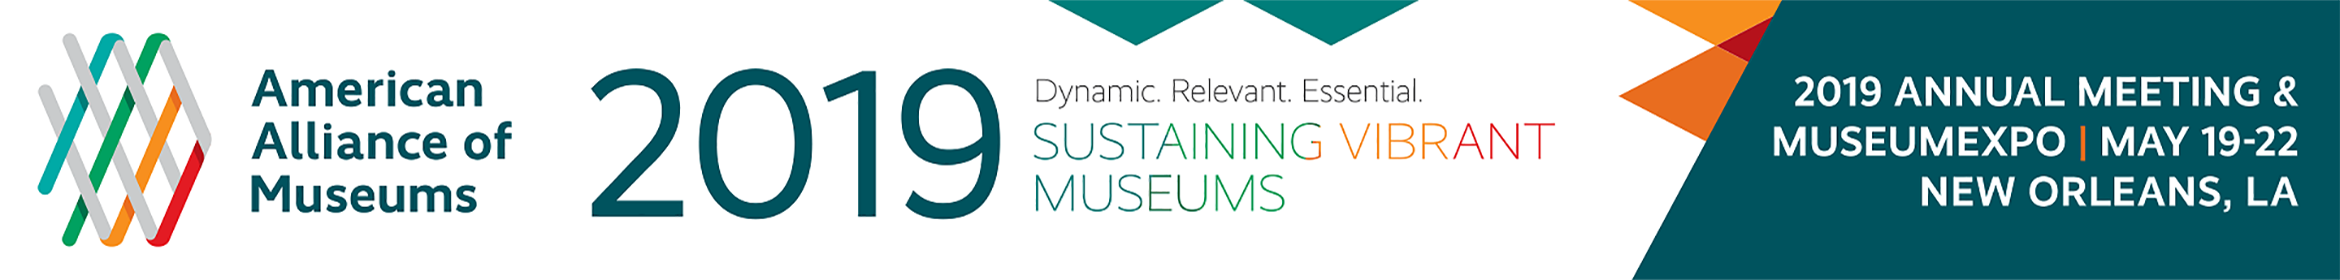 AAM 2019 Annual Meeting Main banner